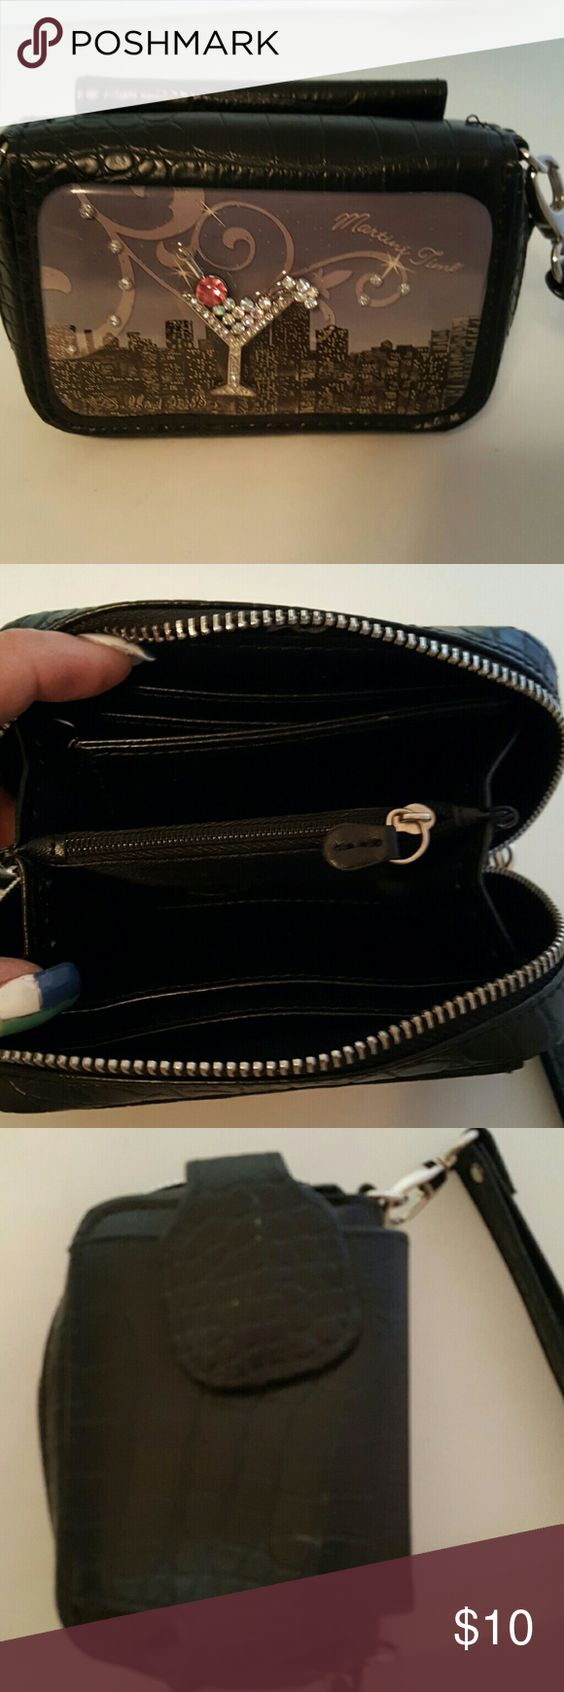 debbie brooks wrist bag and cell phone holder my style